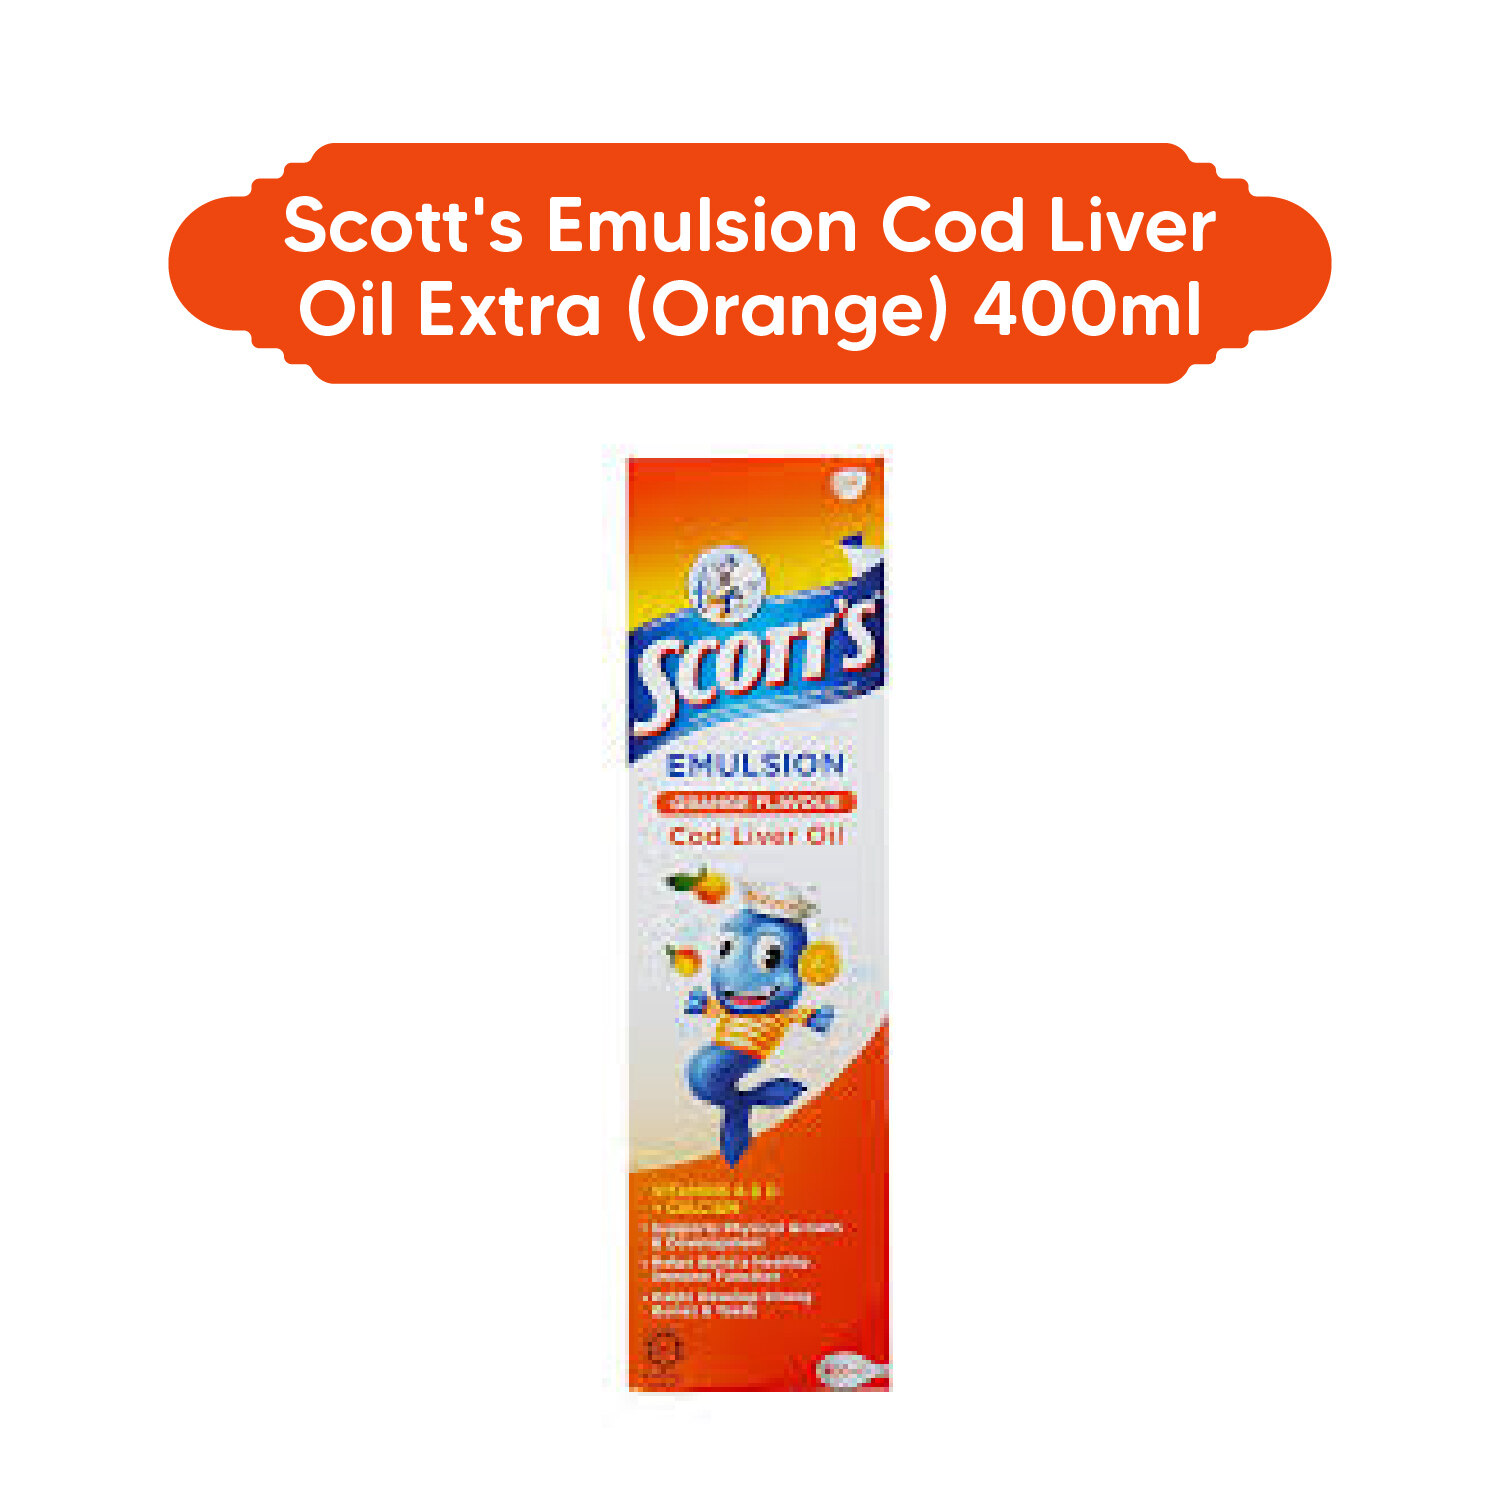 Scott's Emulsion Cod Liver Oil Extra (Orange) 400ml